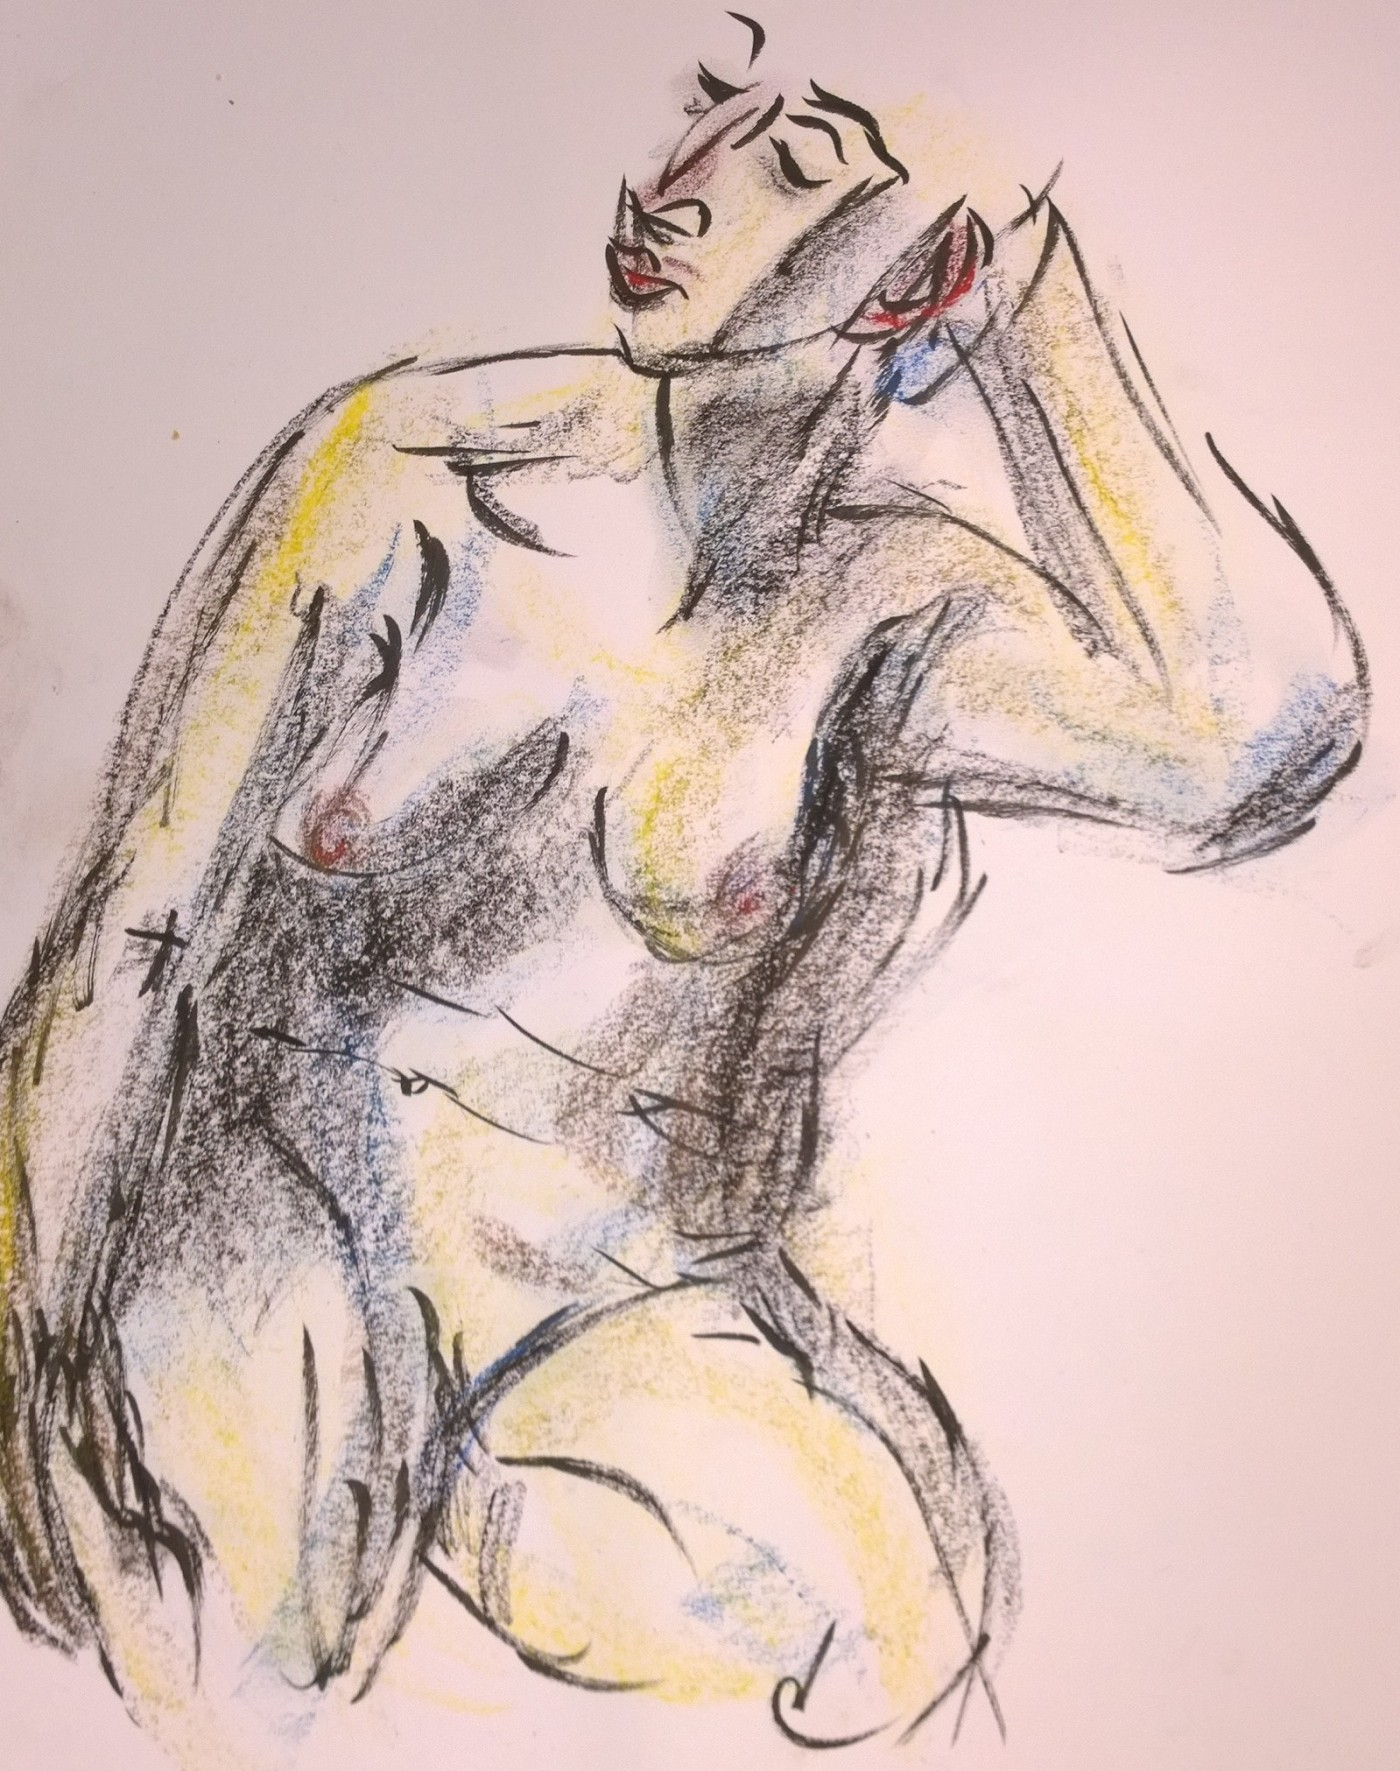 Nude model chillaxing, drawing by William Eaton